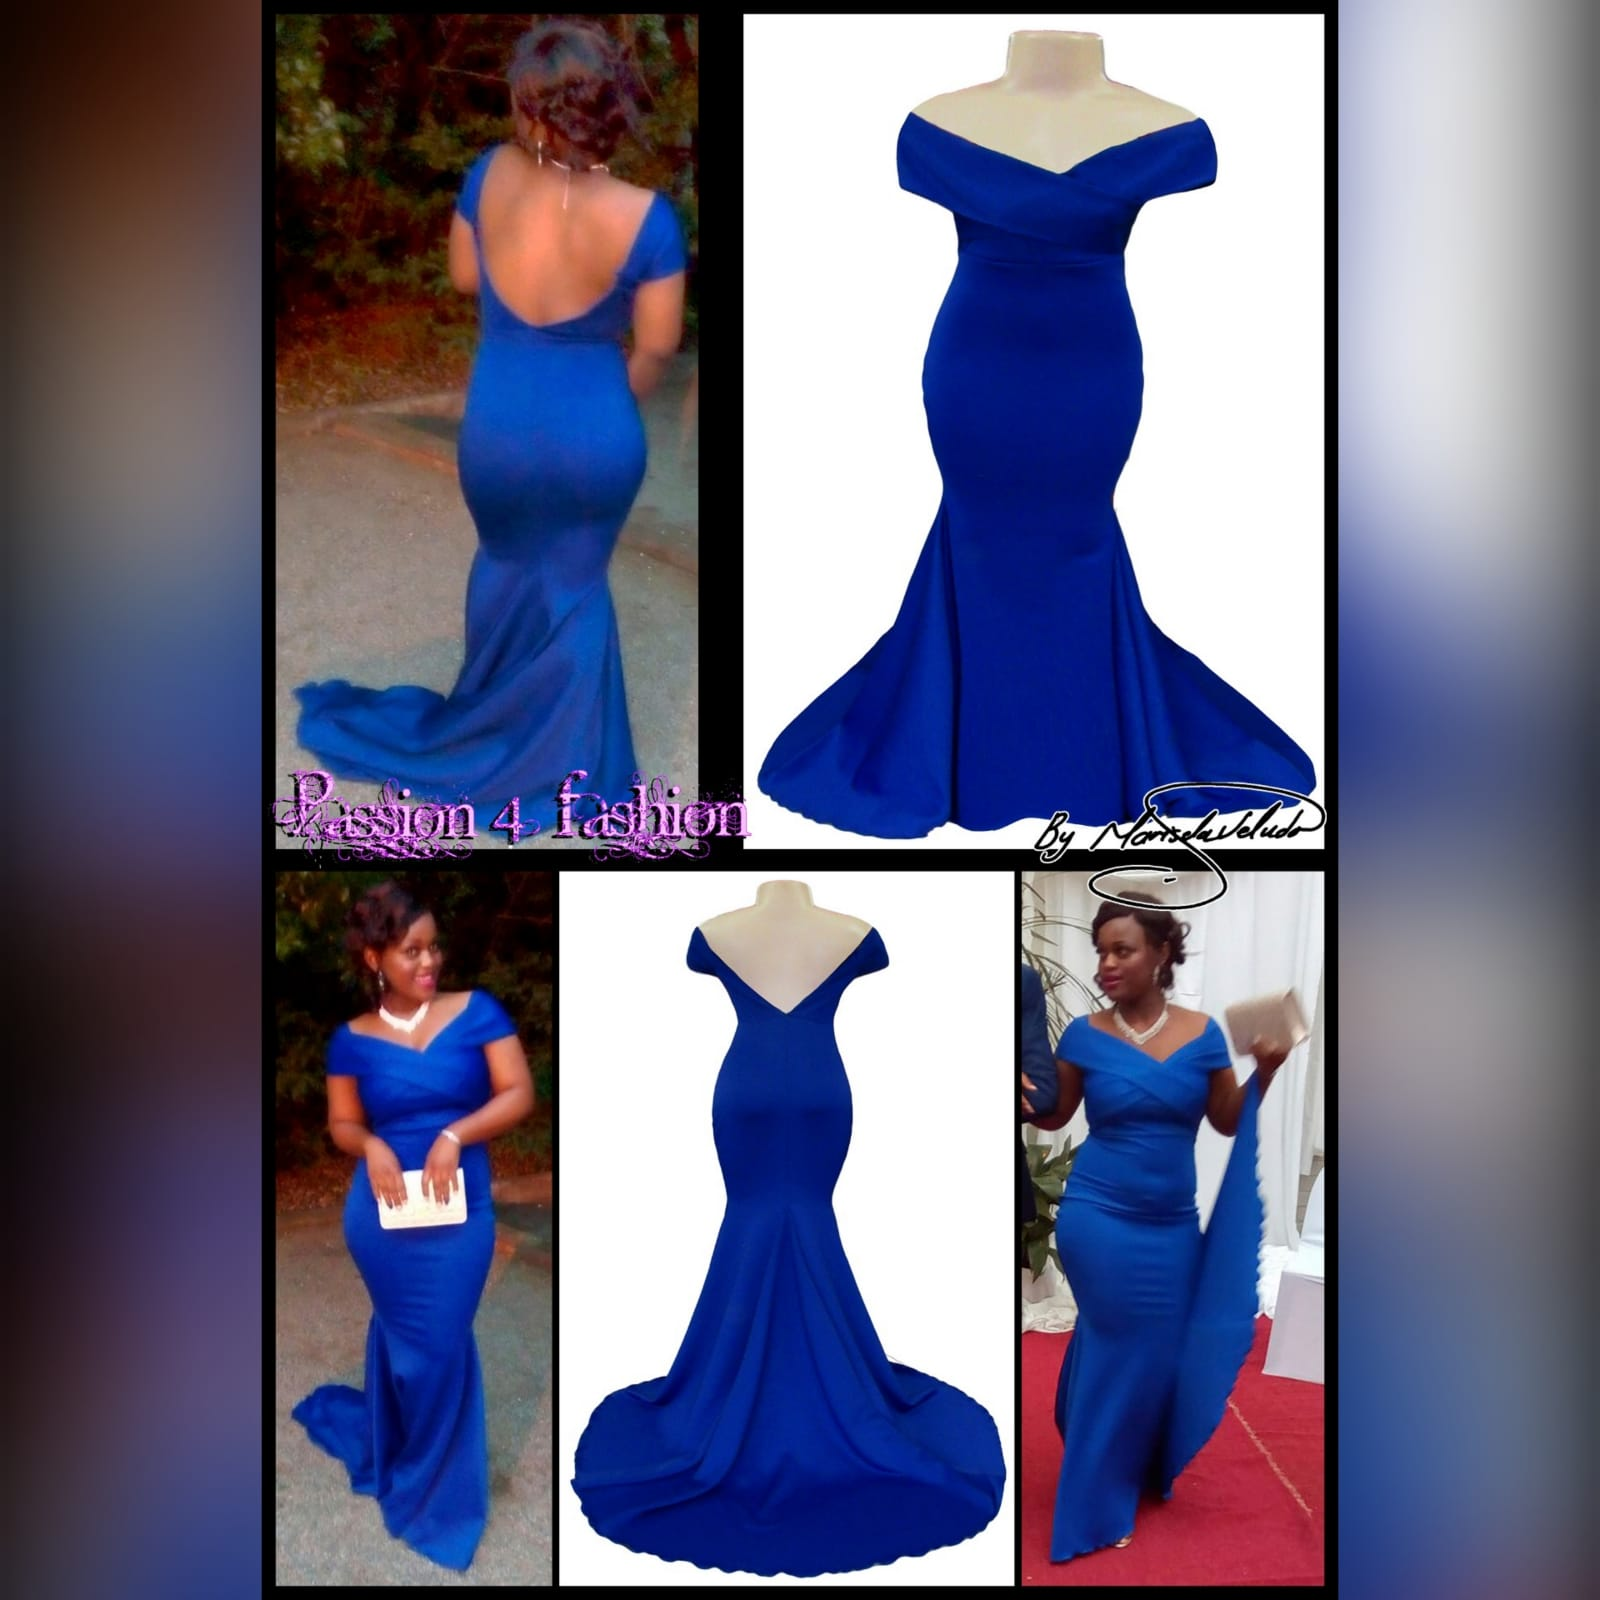 Royal blue off shoulder soft mermaid matric dance dress 3 royal blue off shoulder soft mermaid prom dress with a cross bust strap creating off shoulder sleeves and a rounded open back, with a train.